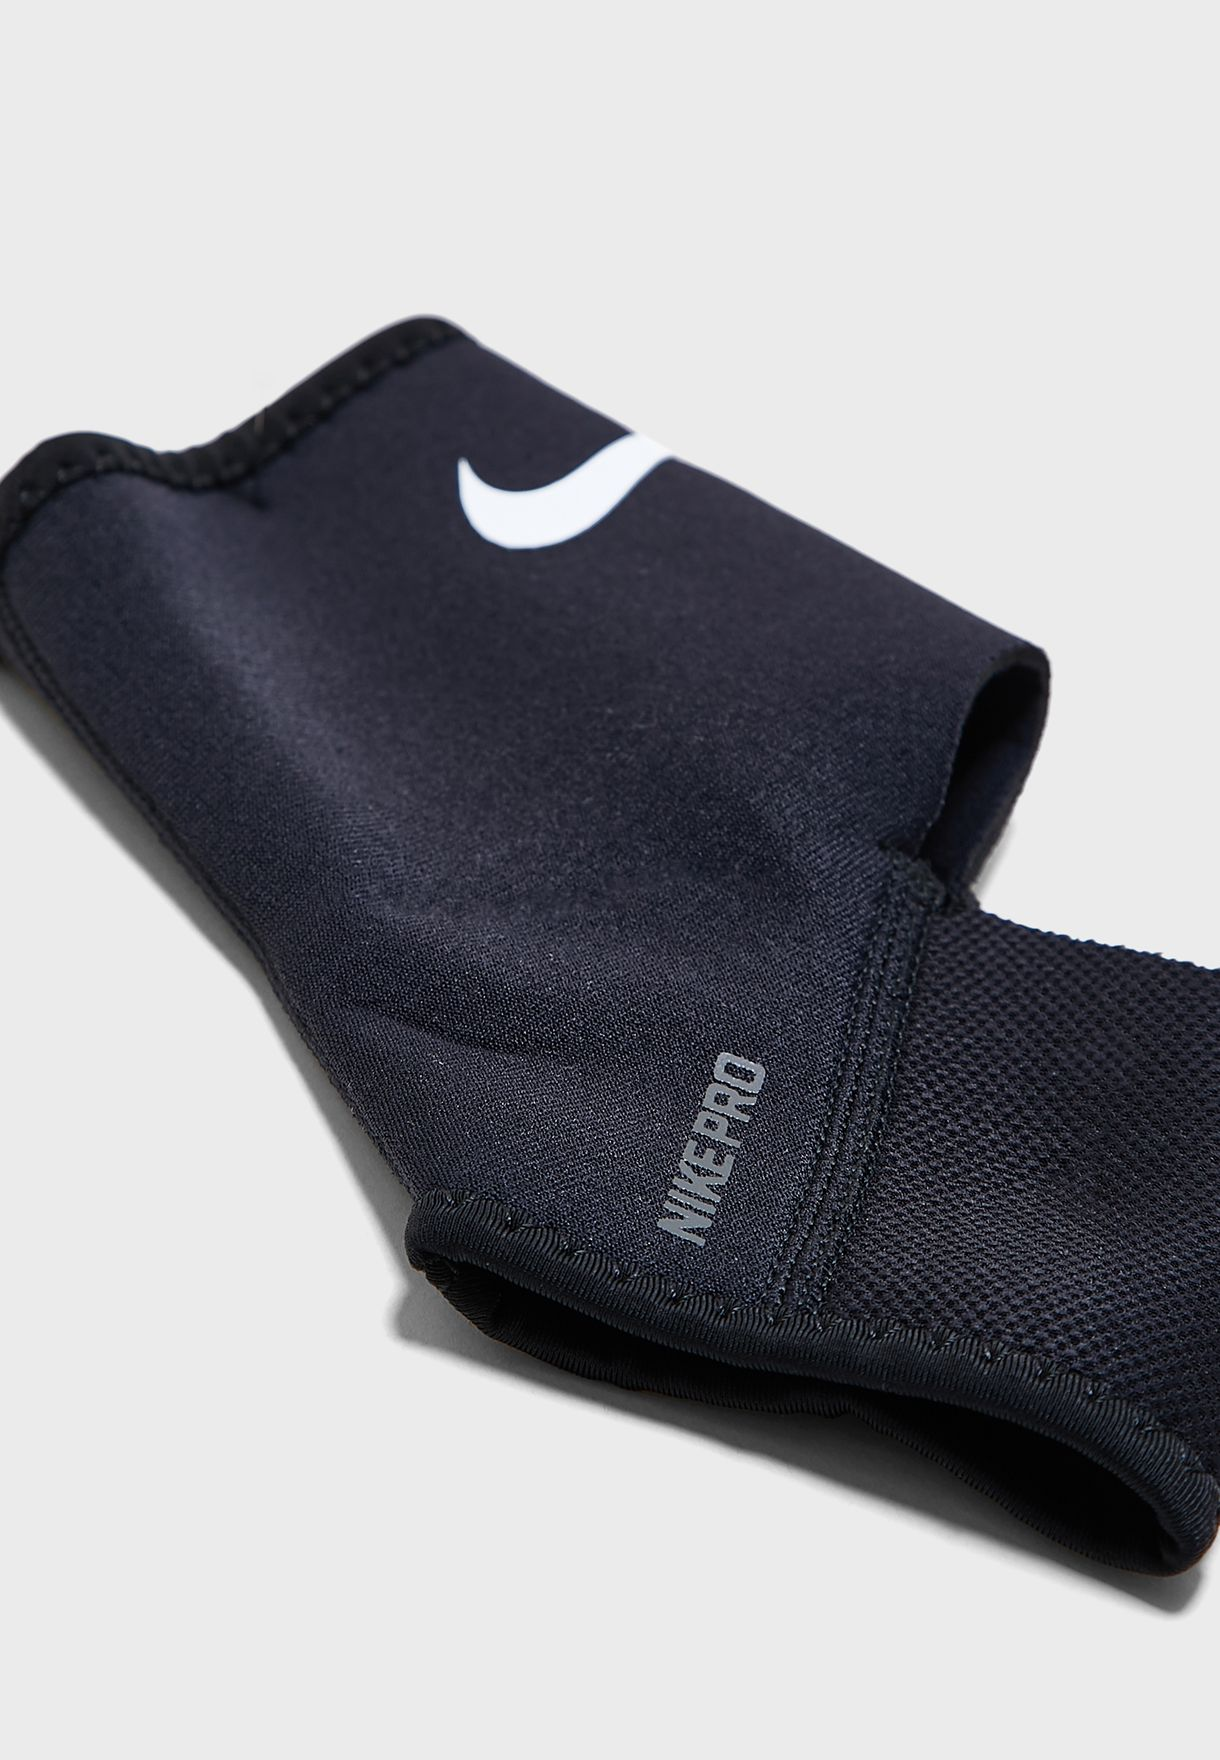 Pro 2.0 Ankle Sleeve